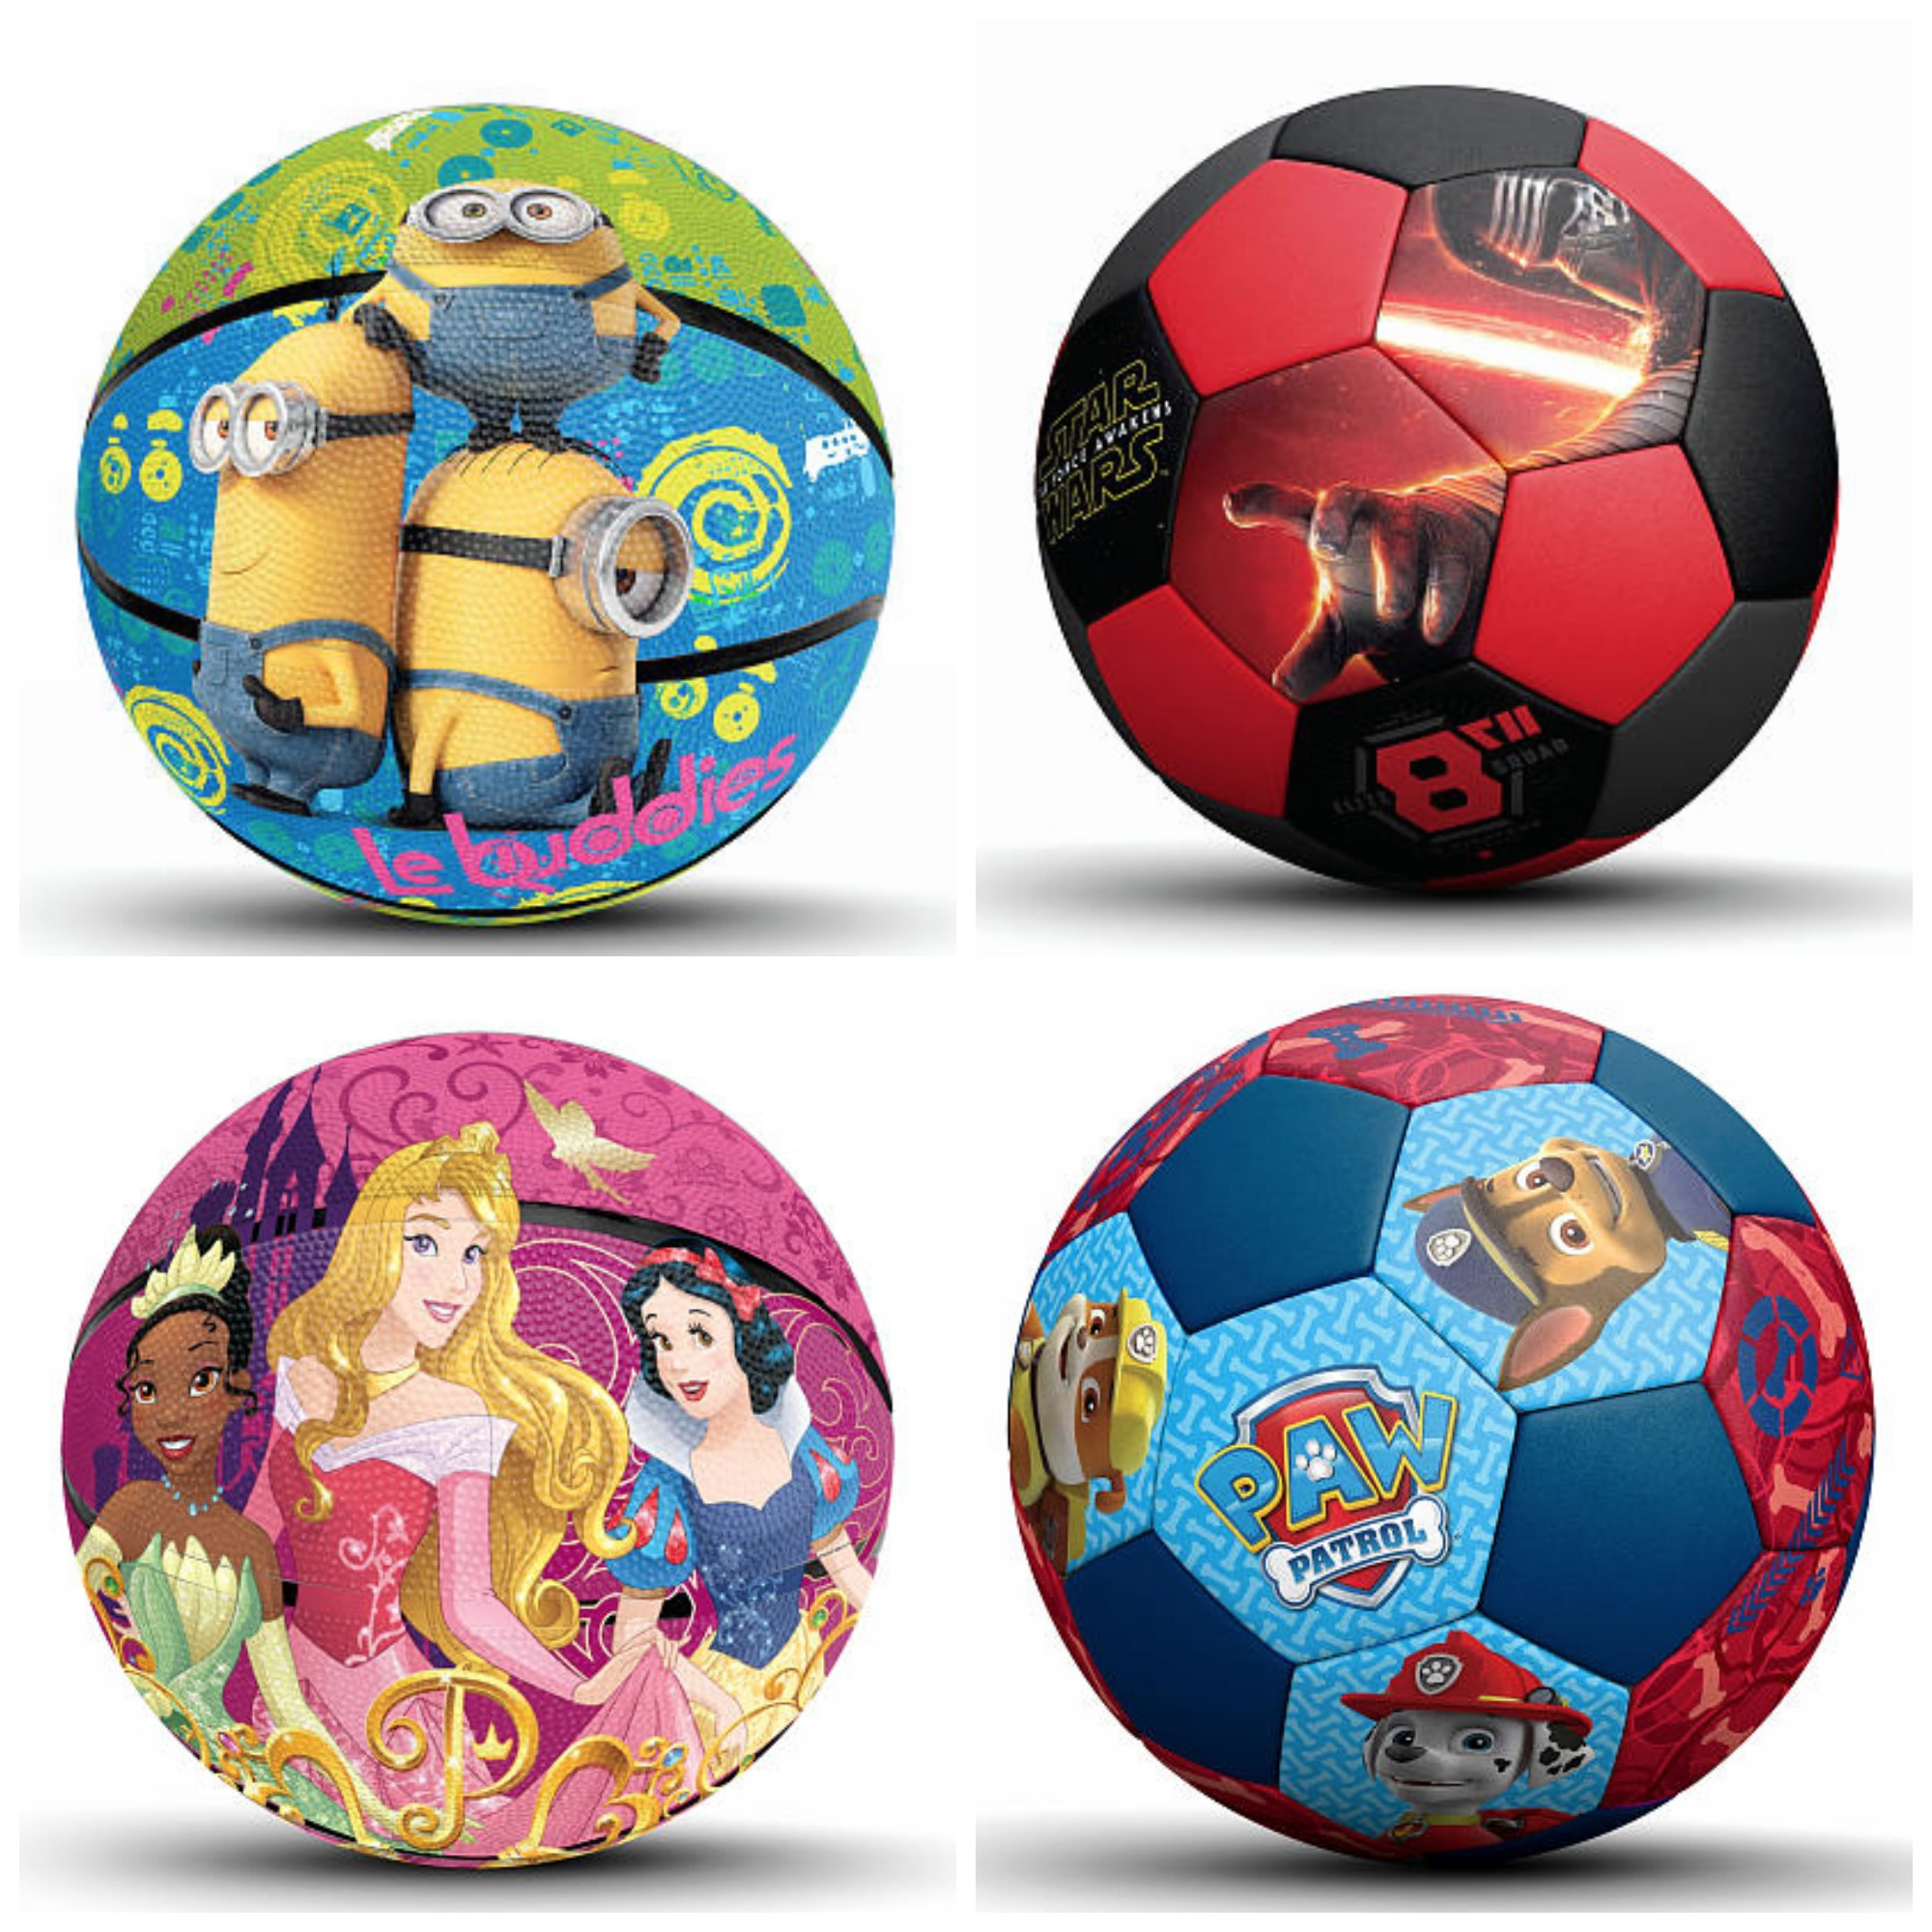 Toys R Us Ball Color : Toys r us character basketball soccer balls are off